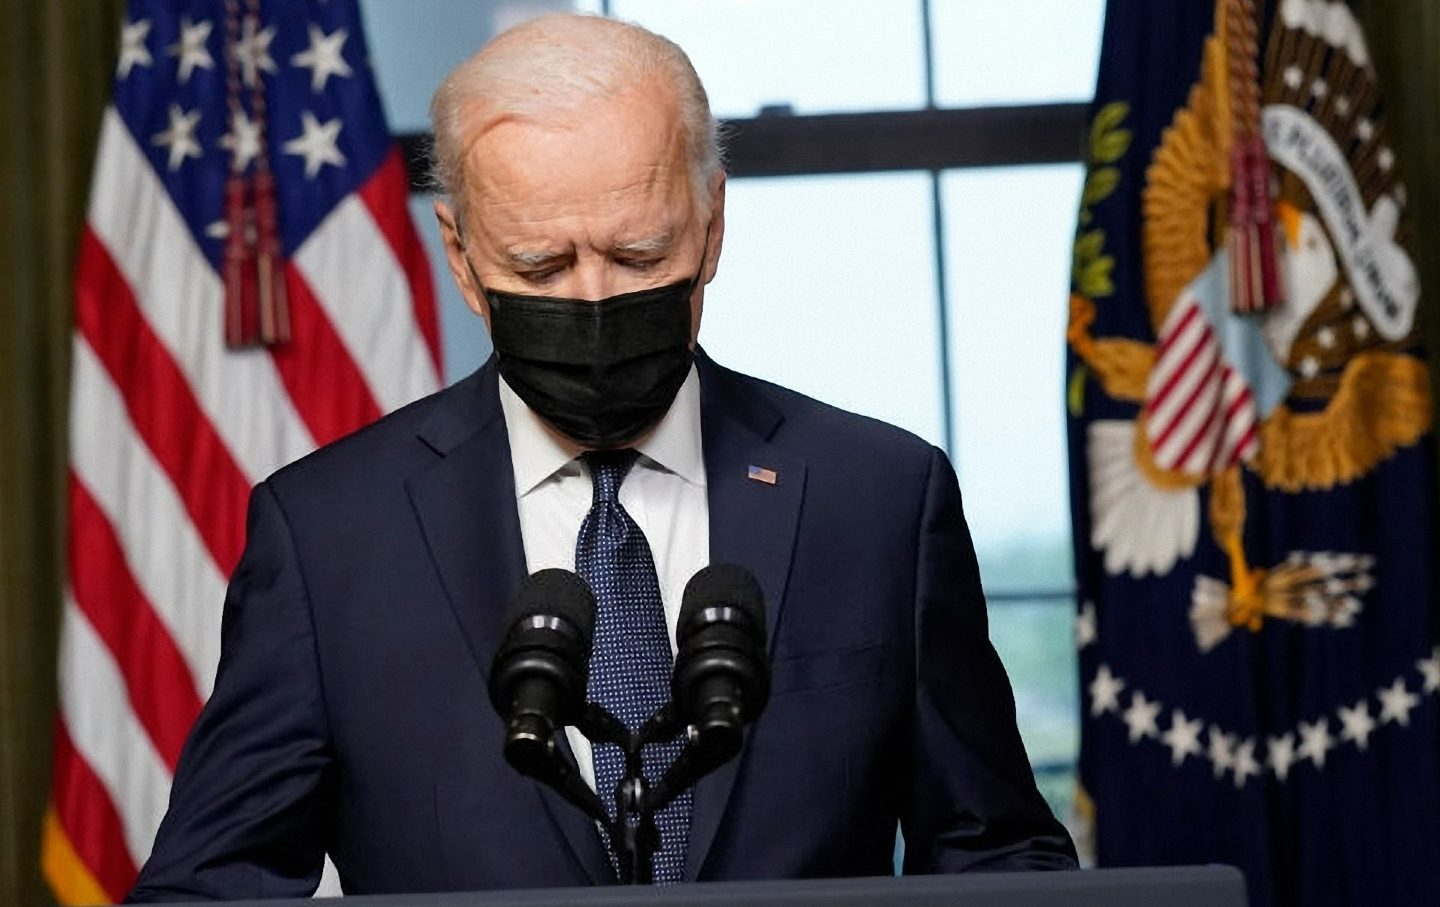 Washington Watch: Biden and Harris Dive Into the Shark-Infested Waters of Bipartisanship